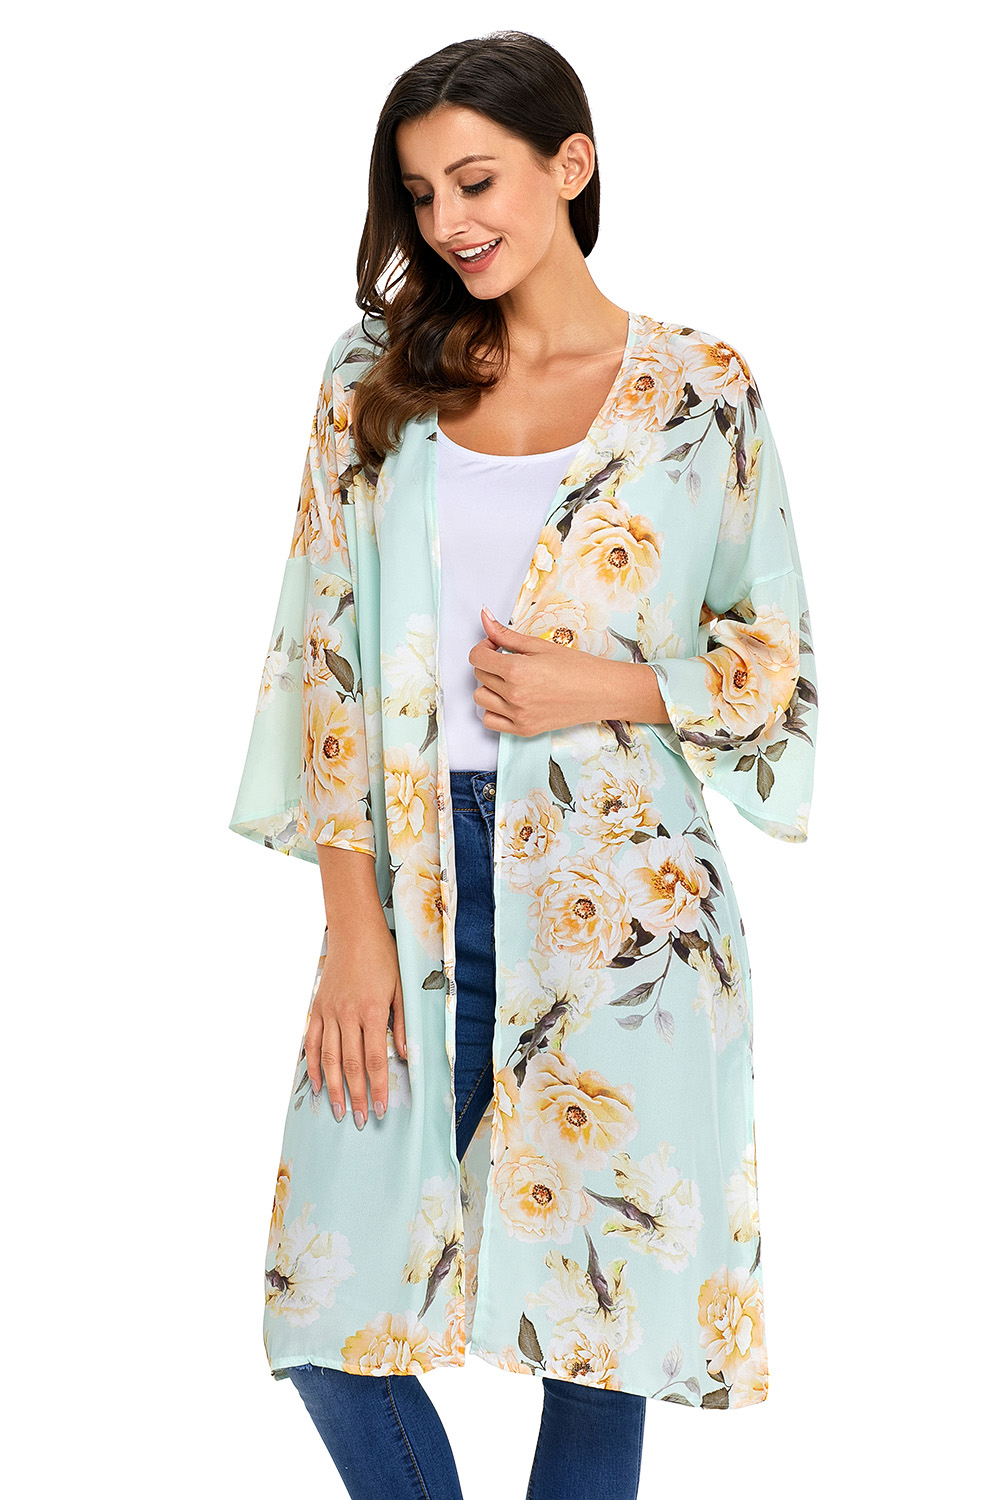 Stylish Floral Printed Side Slit Kaftan Tunic Women Bathingsuit BeachWear Blouse Swimsuit Skirted For Summer